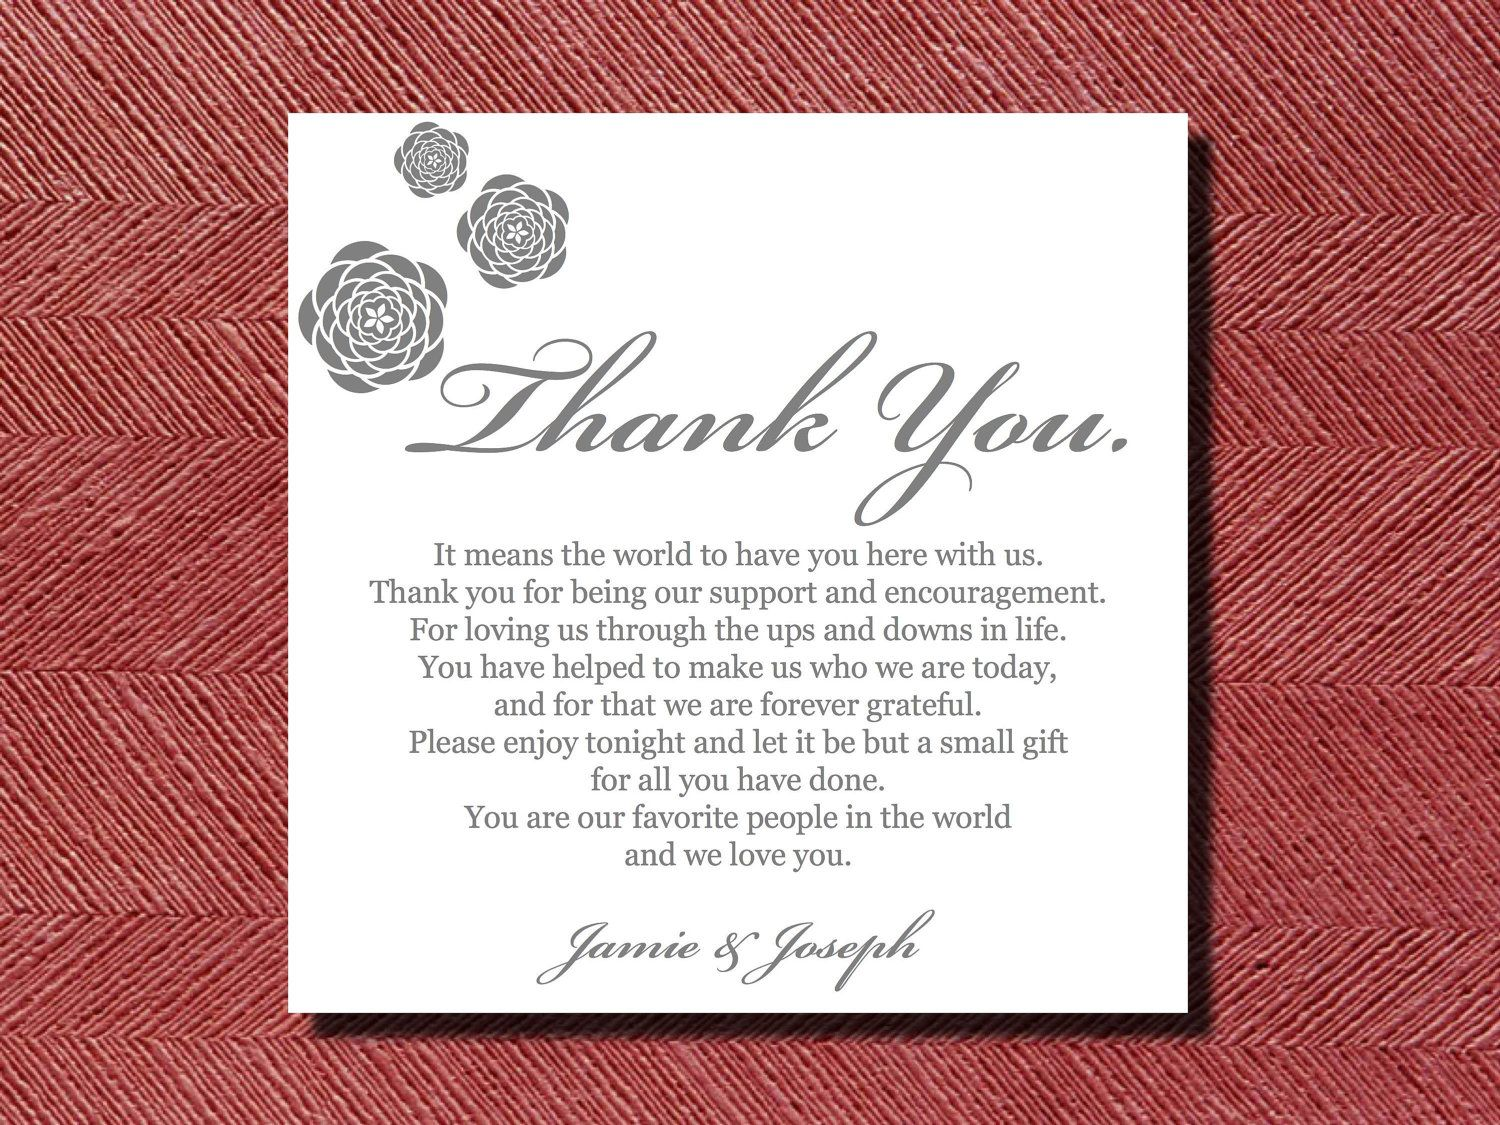 Thank You Letter For Wedding Invitation – guitarreviews.co